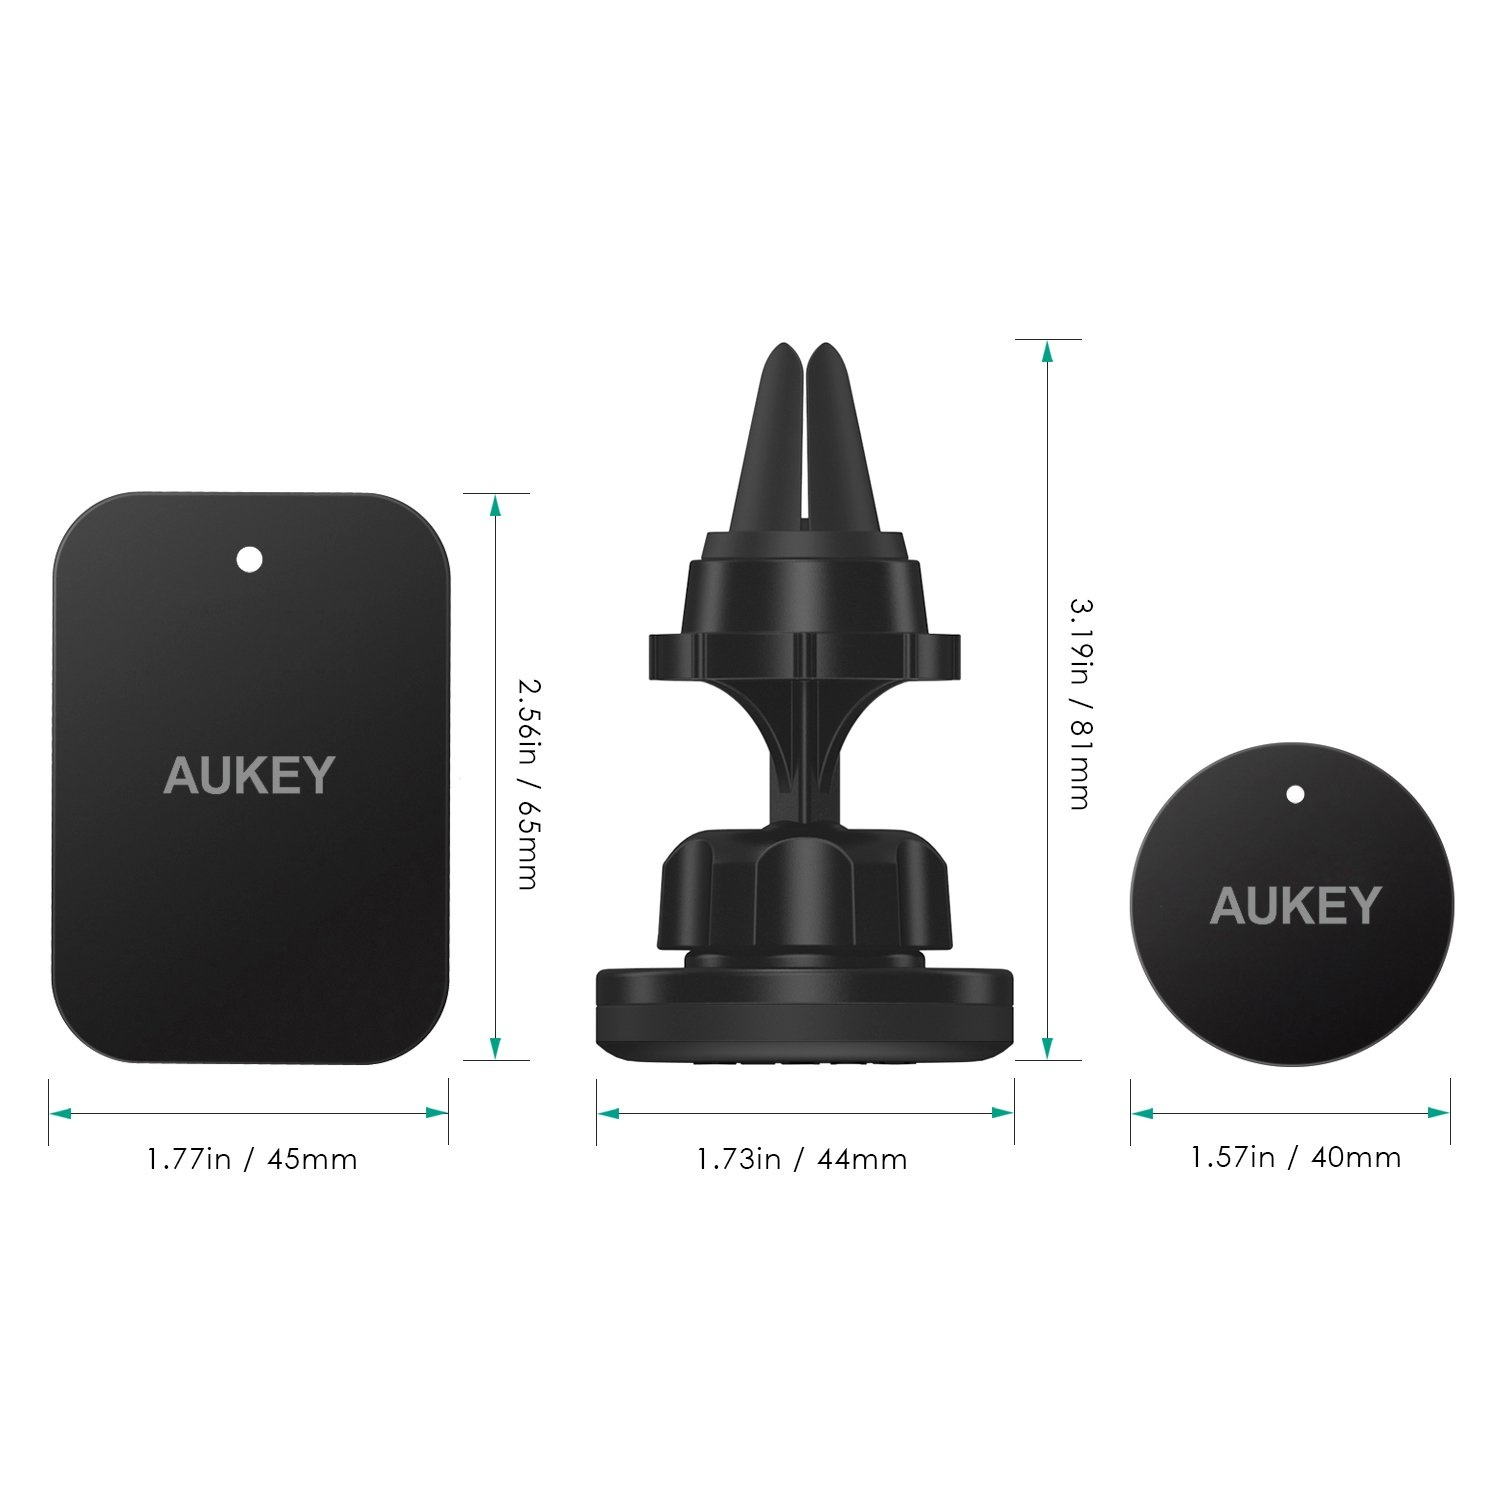 AUKEY Car Phone Holder Magnetic Air Vent 360° Rotatable Car Mount Cradle Universal for GPS, iPhone 7 / 6S / 6 / 5S / 5 , Samsung and Other Android , Windows Smartphones